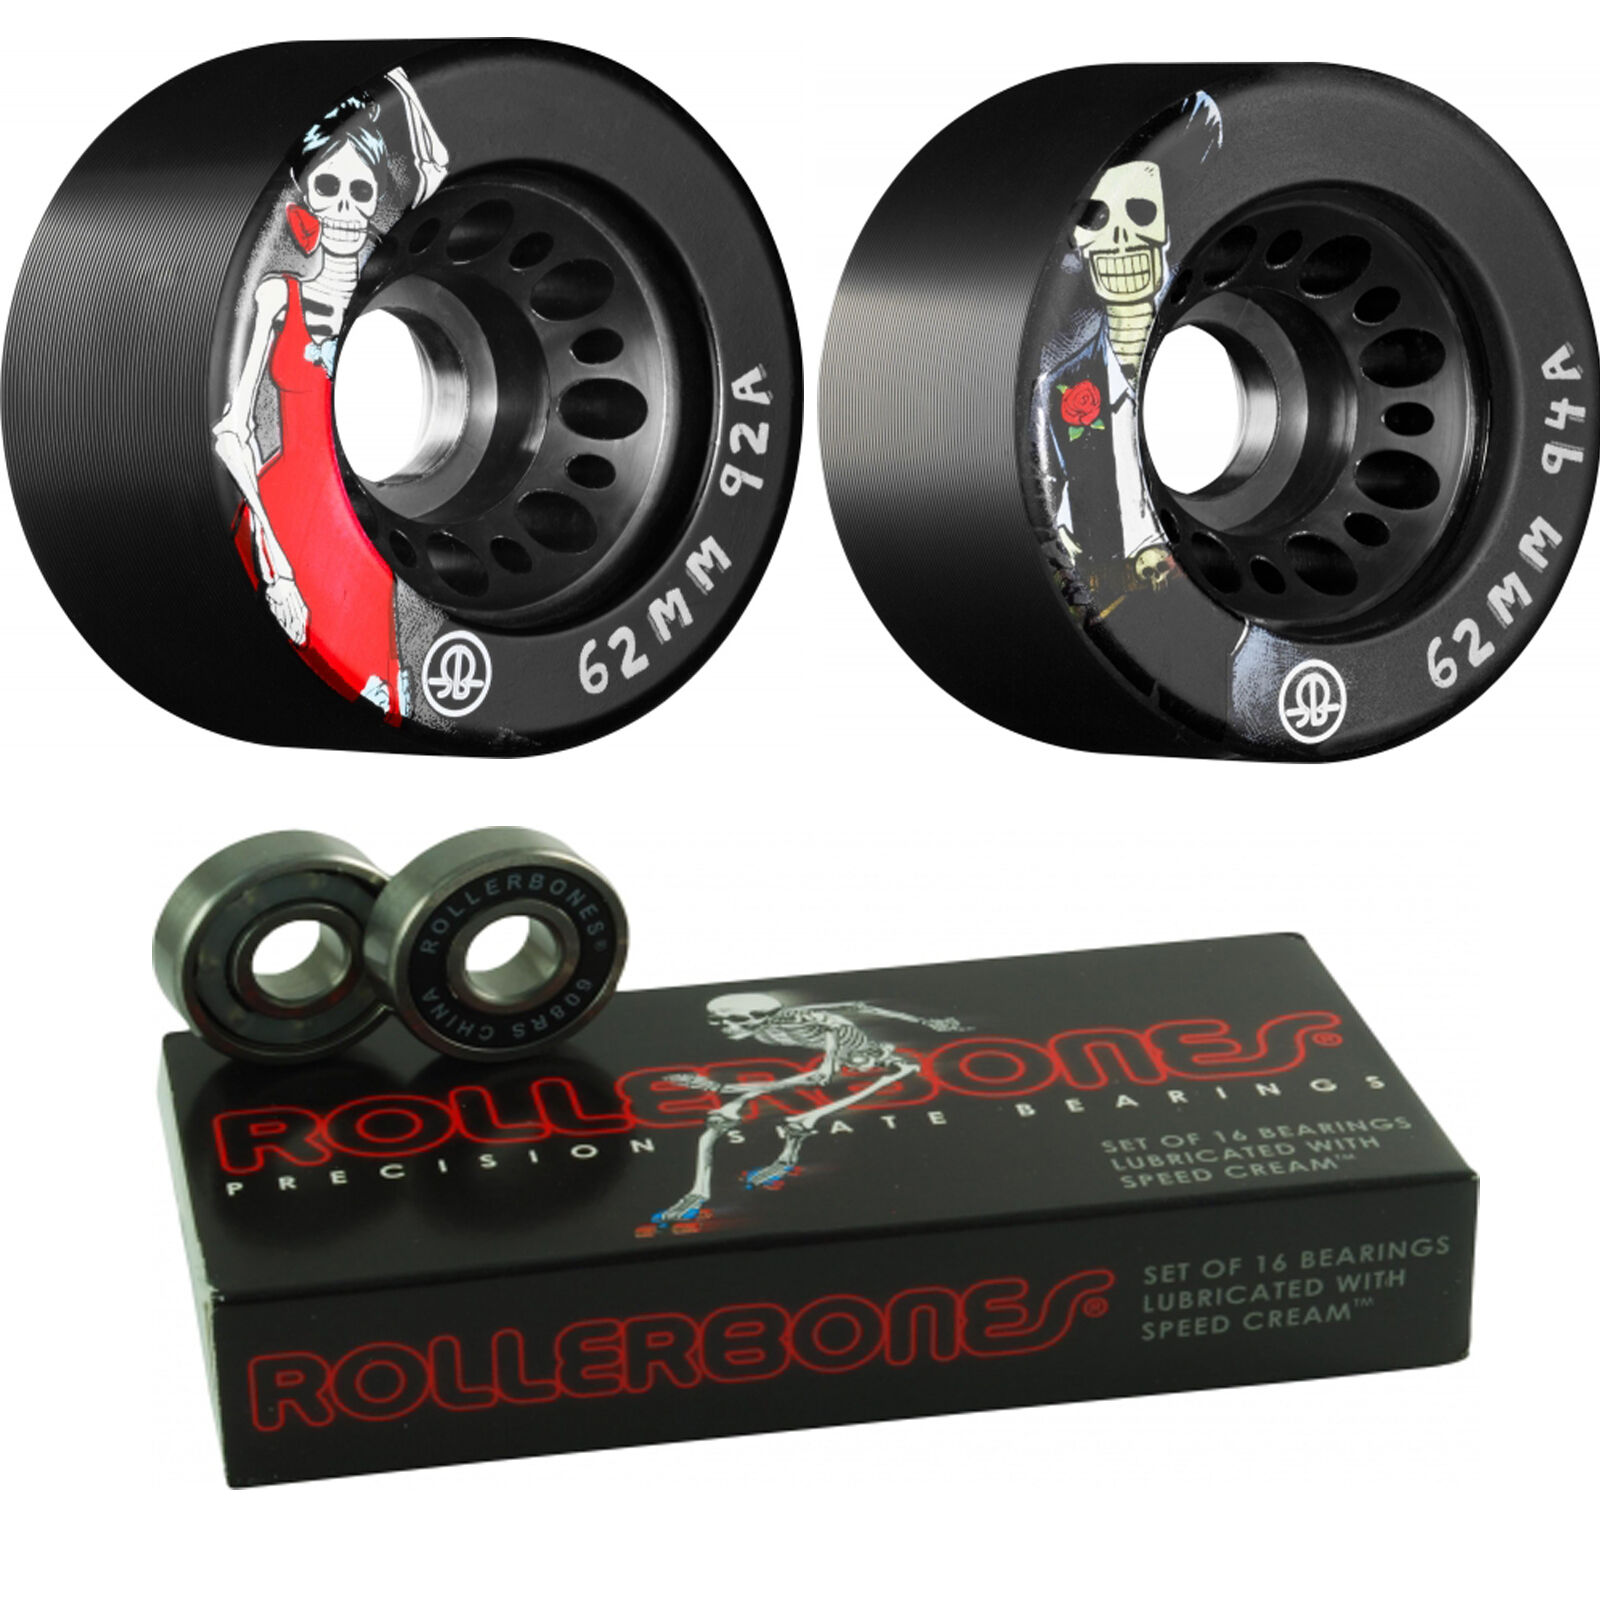 Roller S   Wheels and Bearings - Day Of The Dead with Rollerbones  designer online